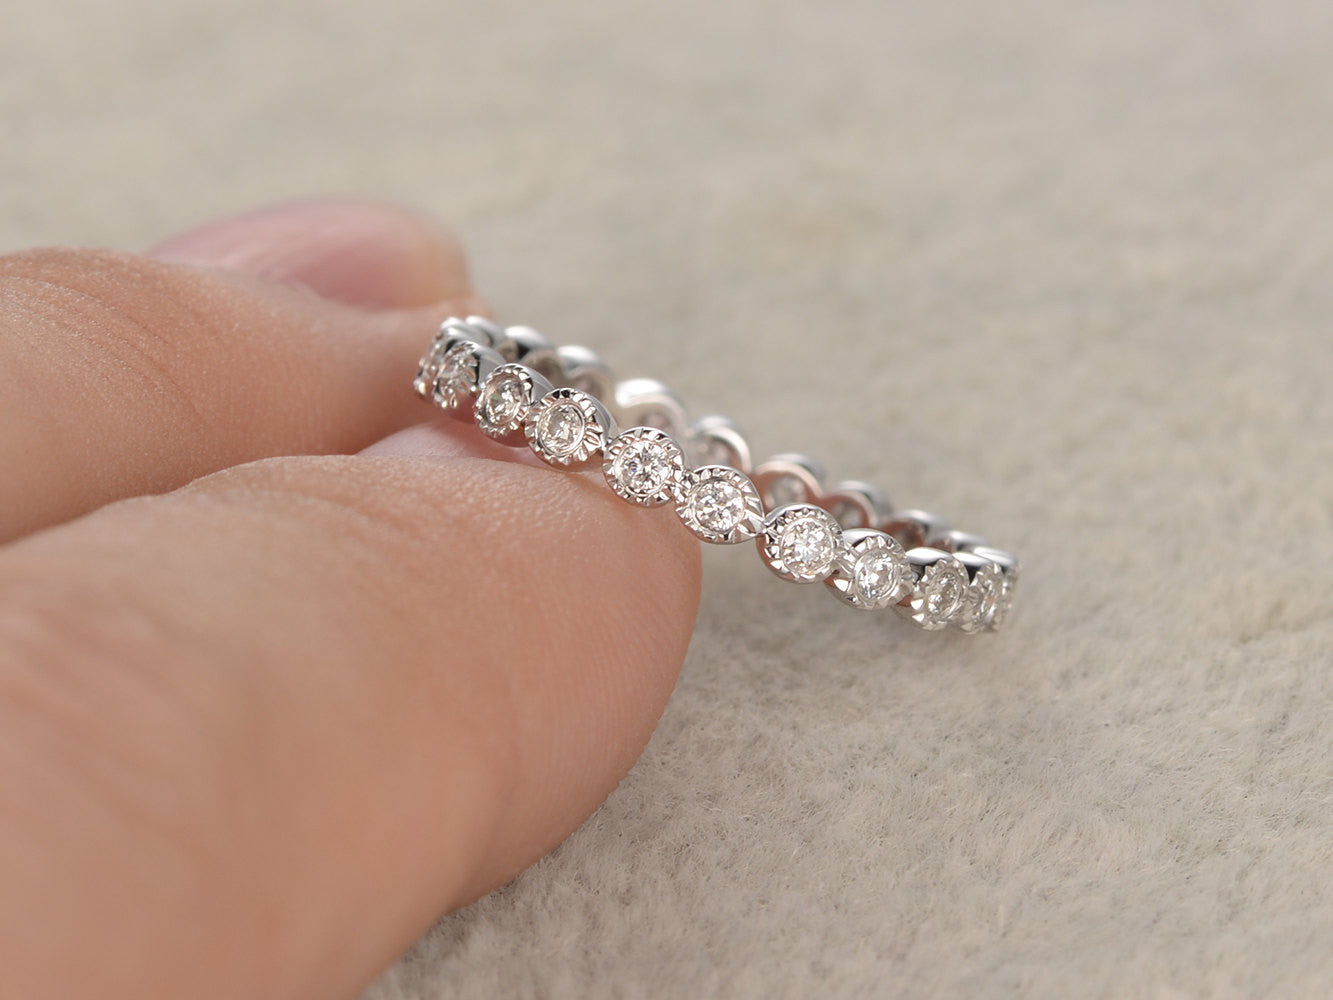 Diamond Wedding Ring,Solid 14K White gold,Anniversary,Full Eternity Band,Bezel Set,Infinity,stacking Ring,Matching band